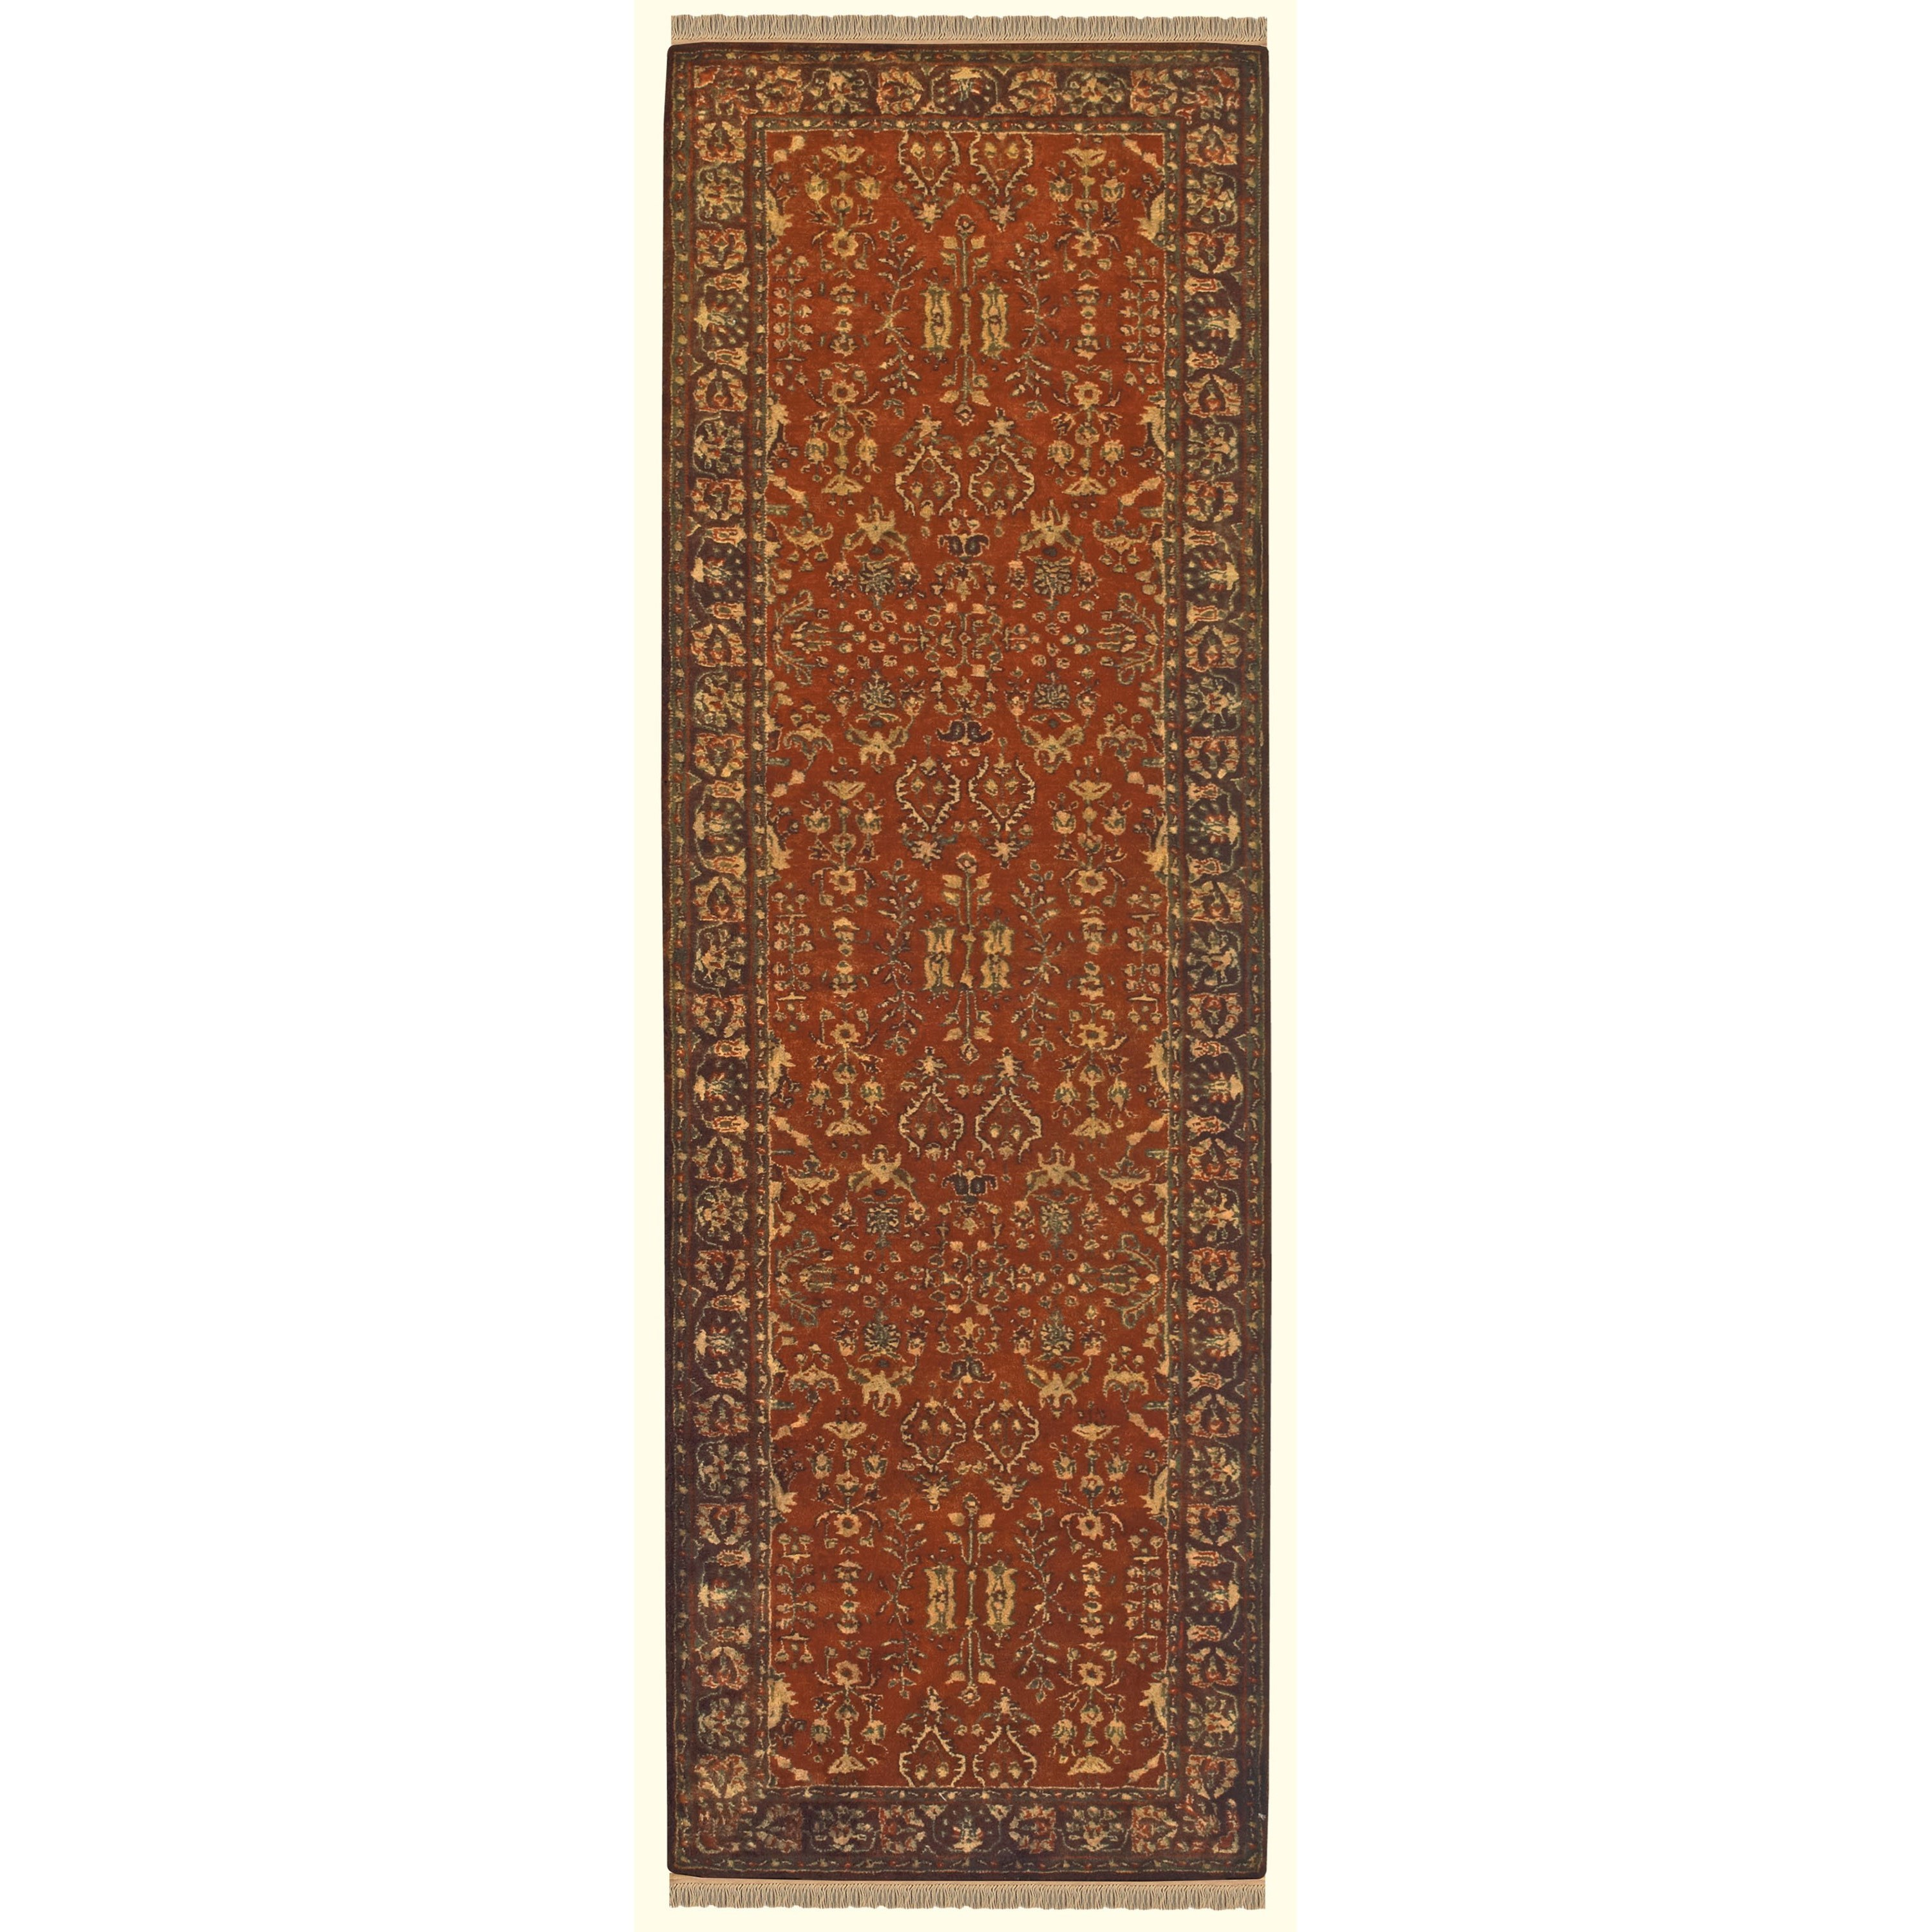 "Amore Cinnamon/Plum 2'-3"" x 8' Runner Rug by Feizy Rugs at Sprintz Furniture"